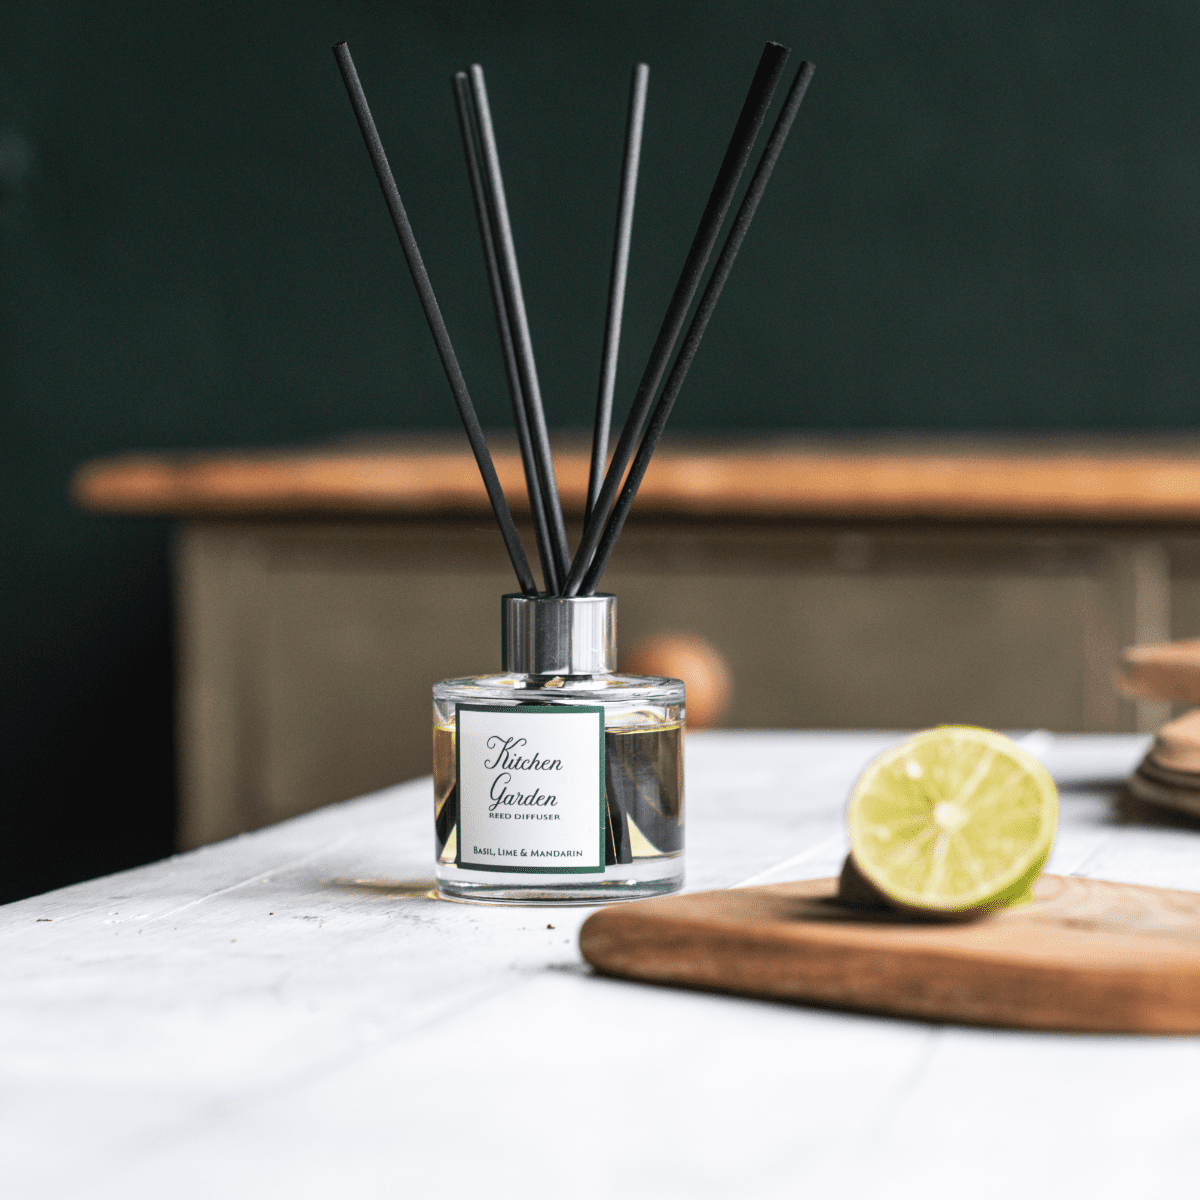 Kitchen Garden diffuser bottle containing black fibre reeds on a kitchen worktop. Wooden chopping board on the right hand side with half a lime.